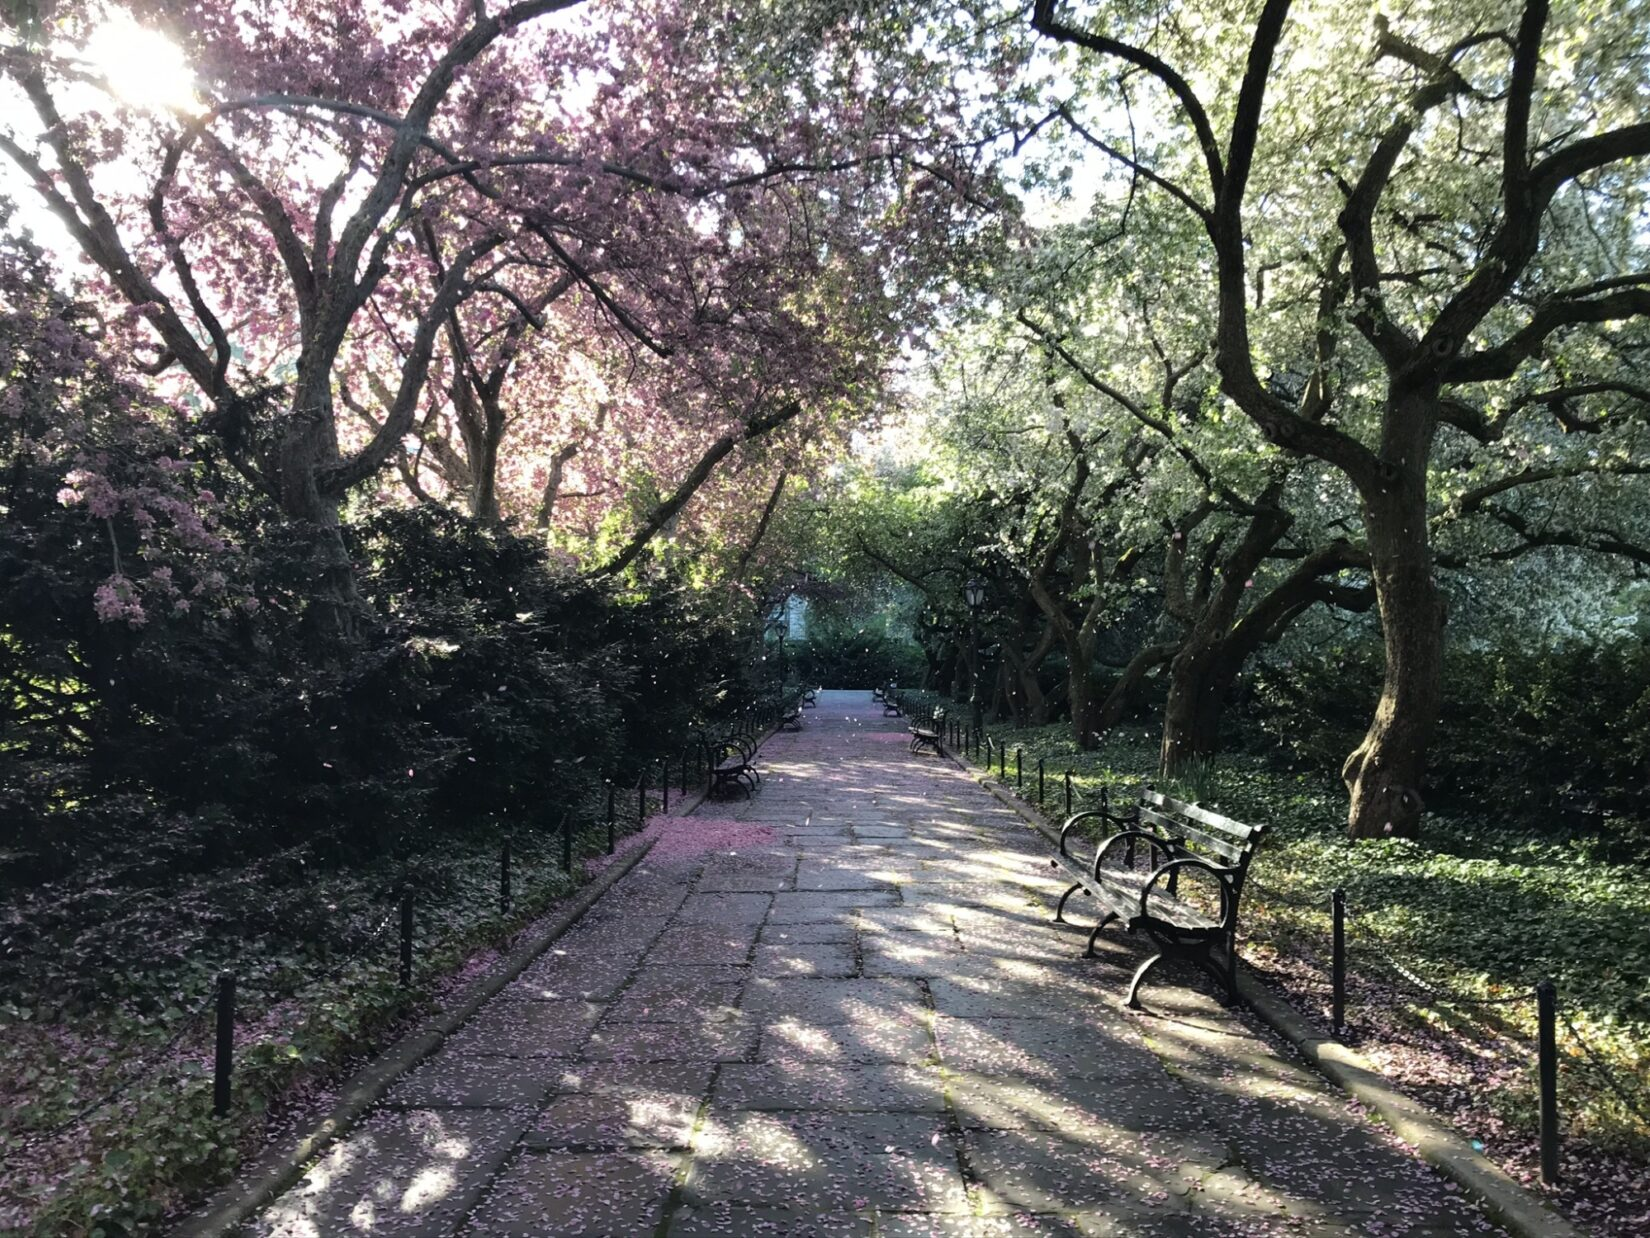 The path is shown strewn with pink fallen buds in the long shadows of evening.